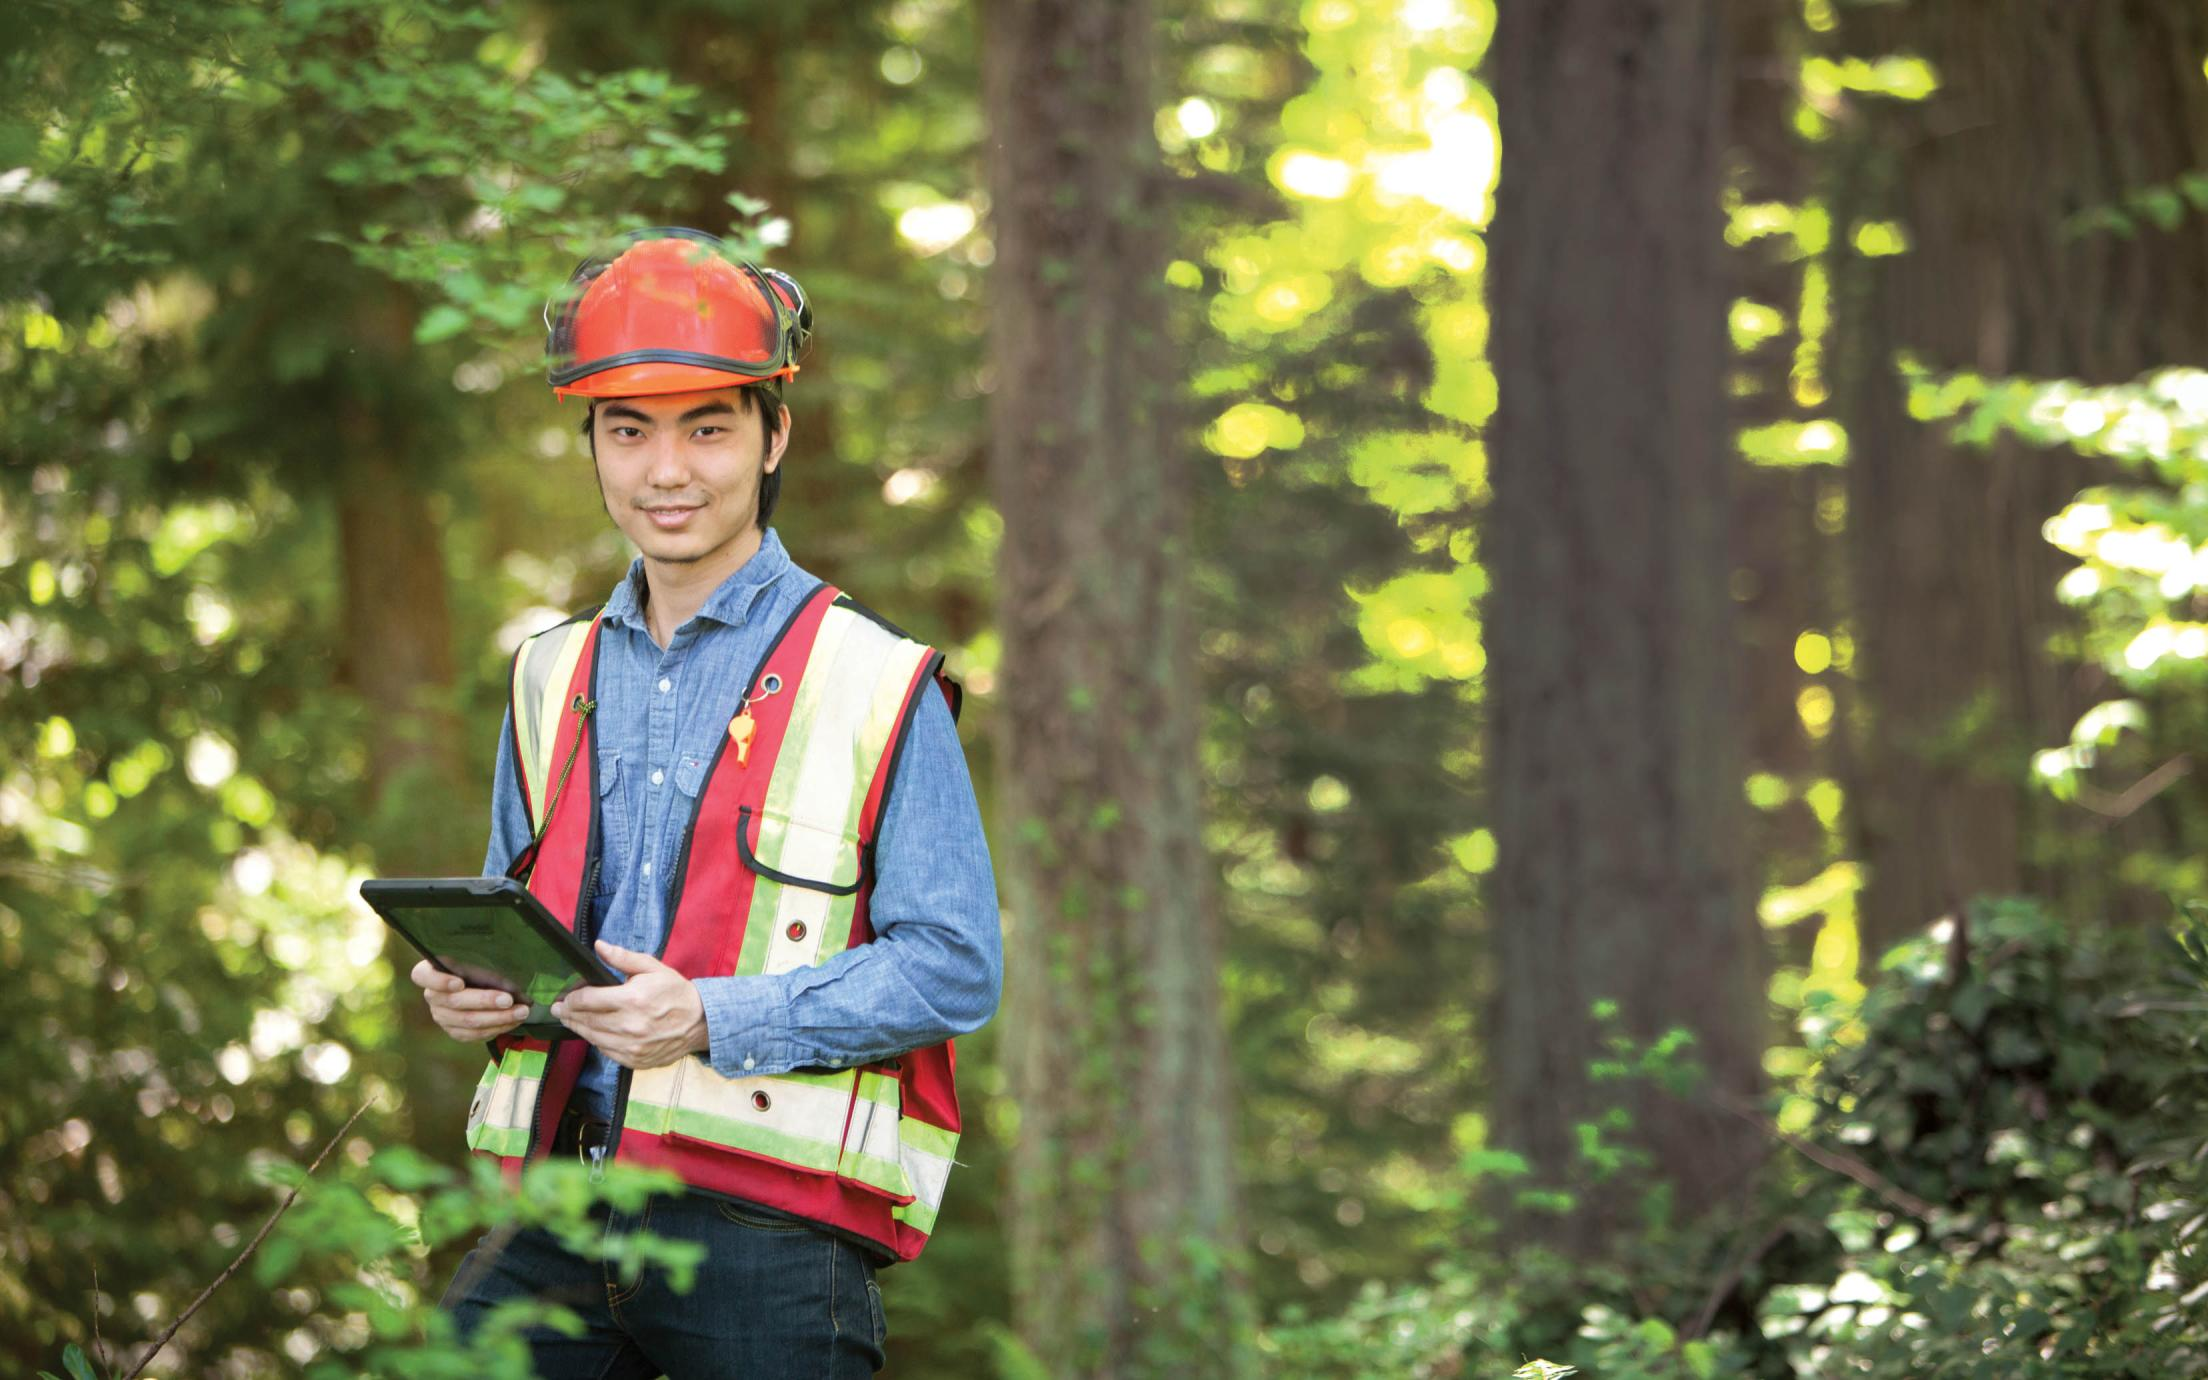 A former Student of Vancouver Island University's Forest Resources Technology program found work as a forestry engineer